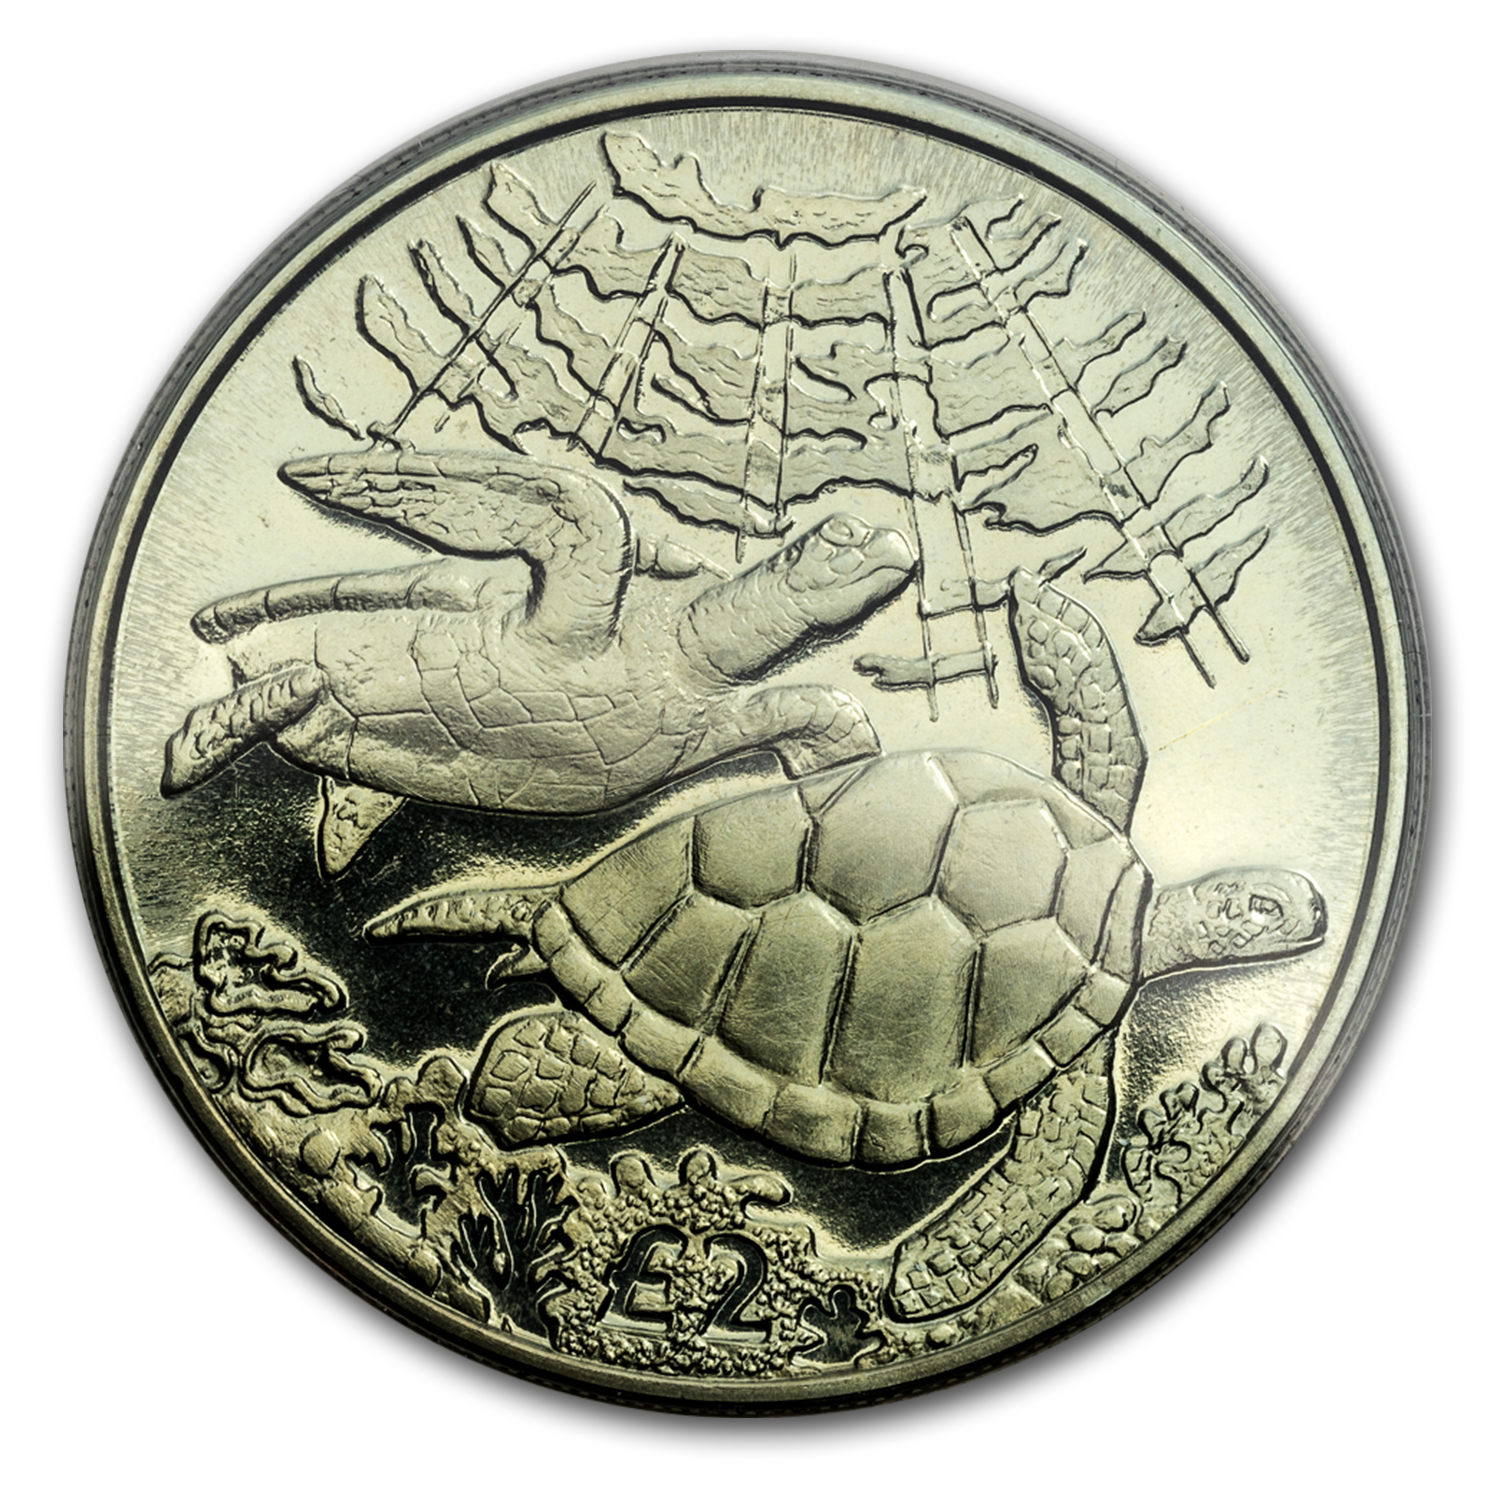 2017 British Indian Ocean Territory 1/3 oz Green Titanium Turtle